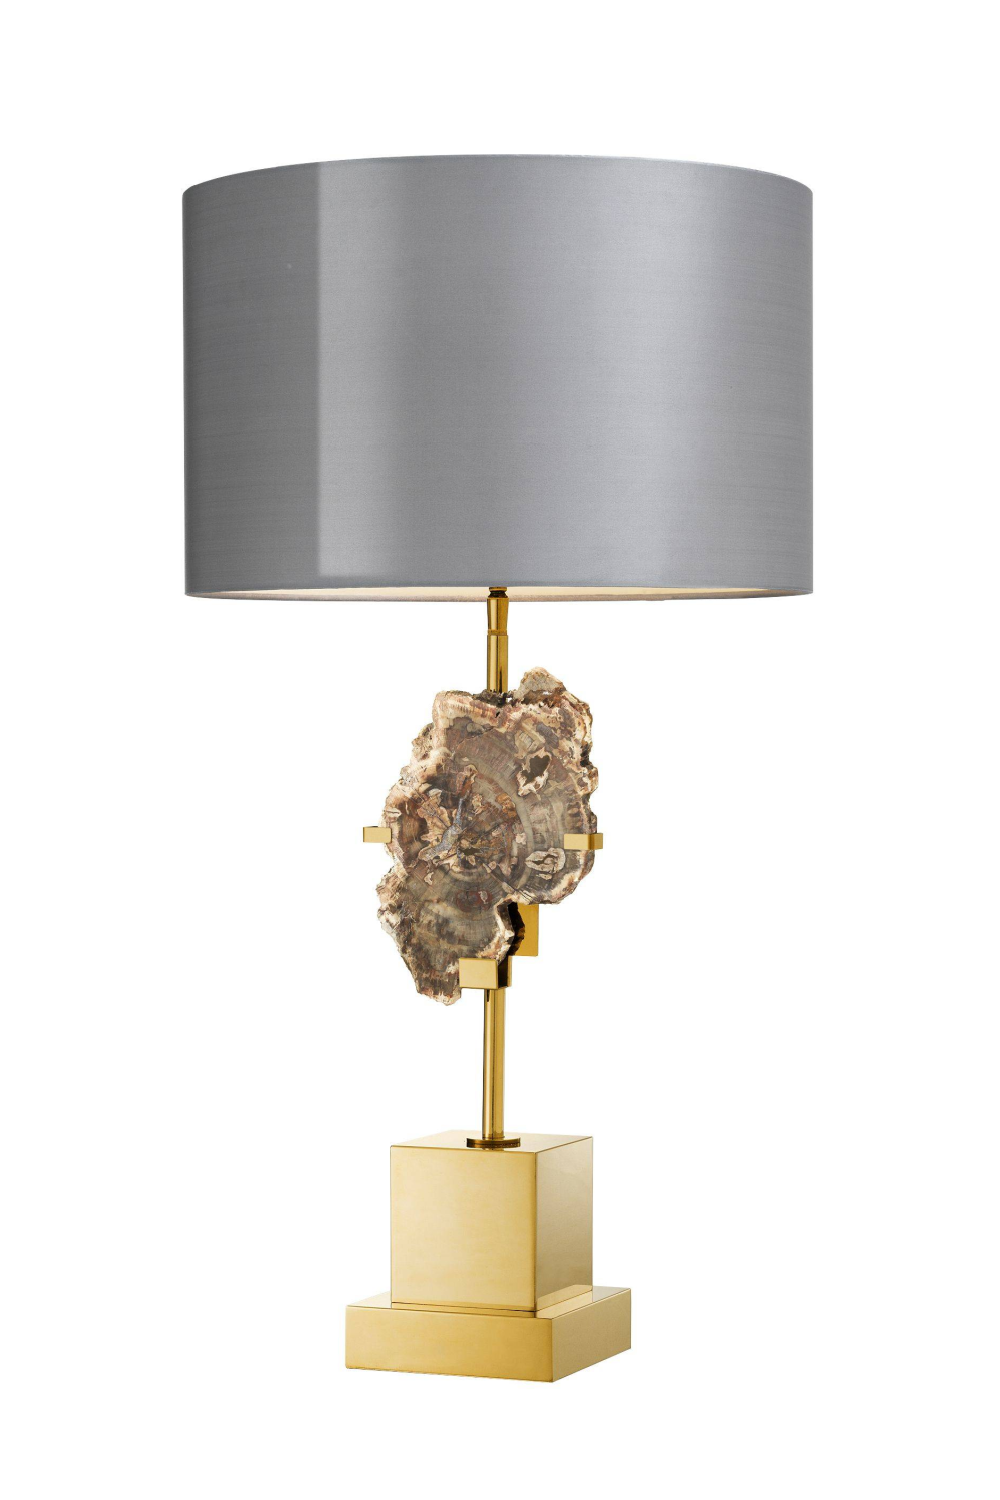 Petrified Wood Table Lamp | Eichholtz Divini | #1 Eichholtz Retailer